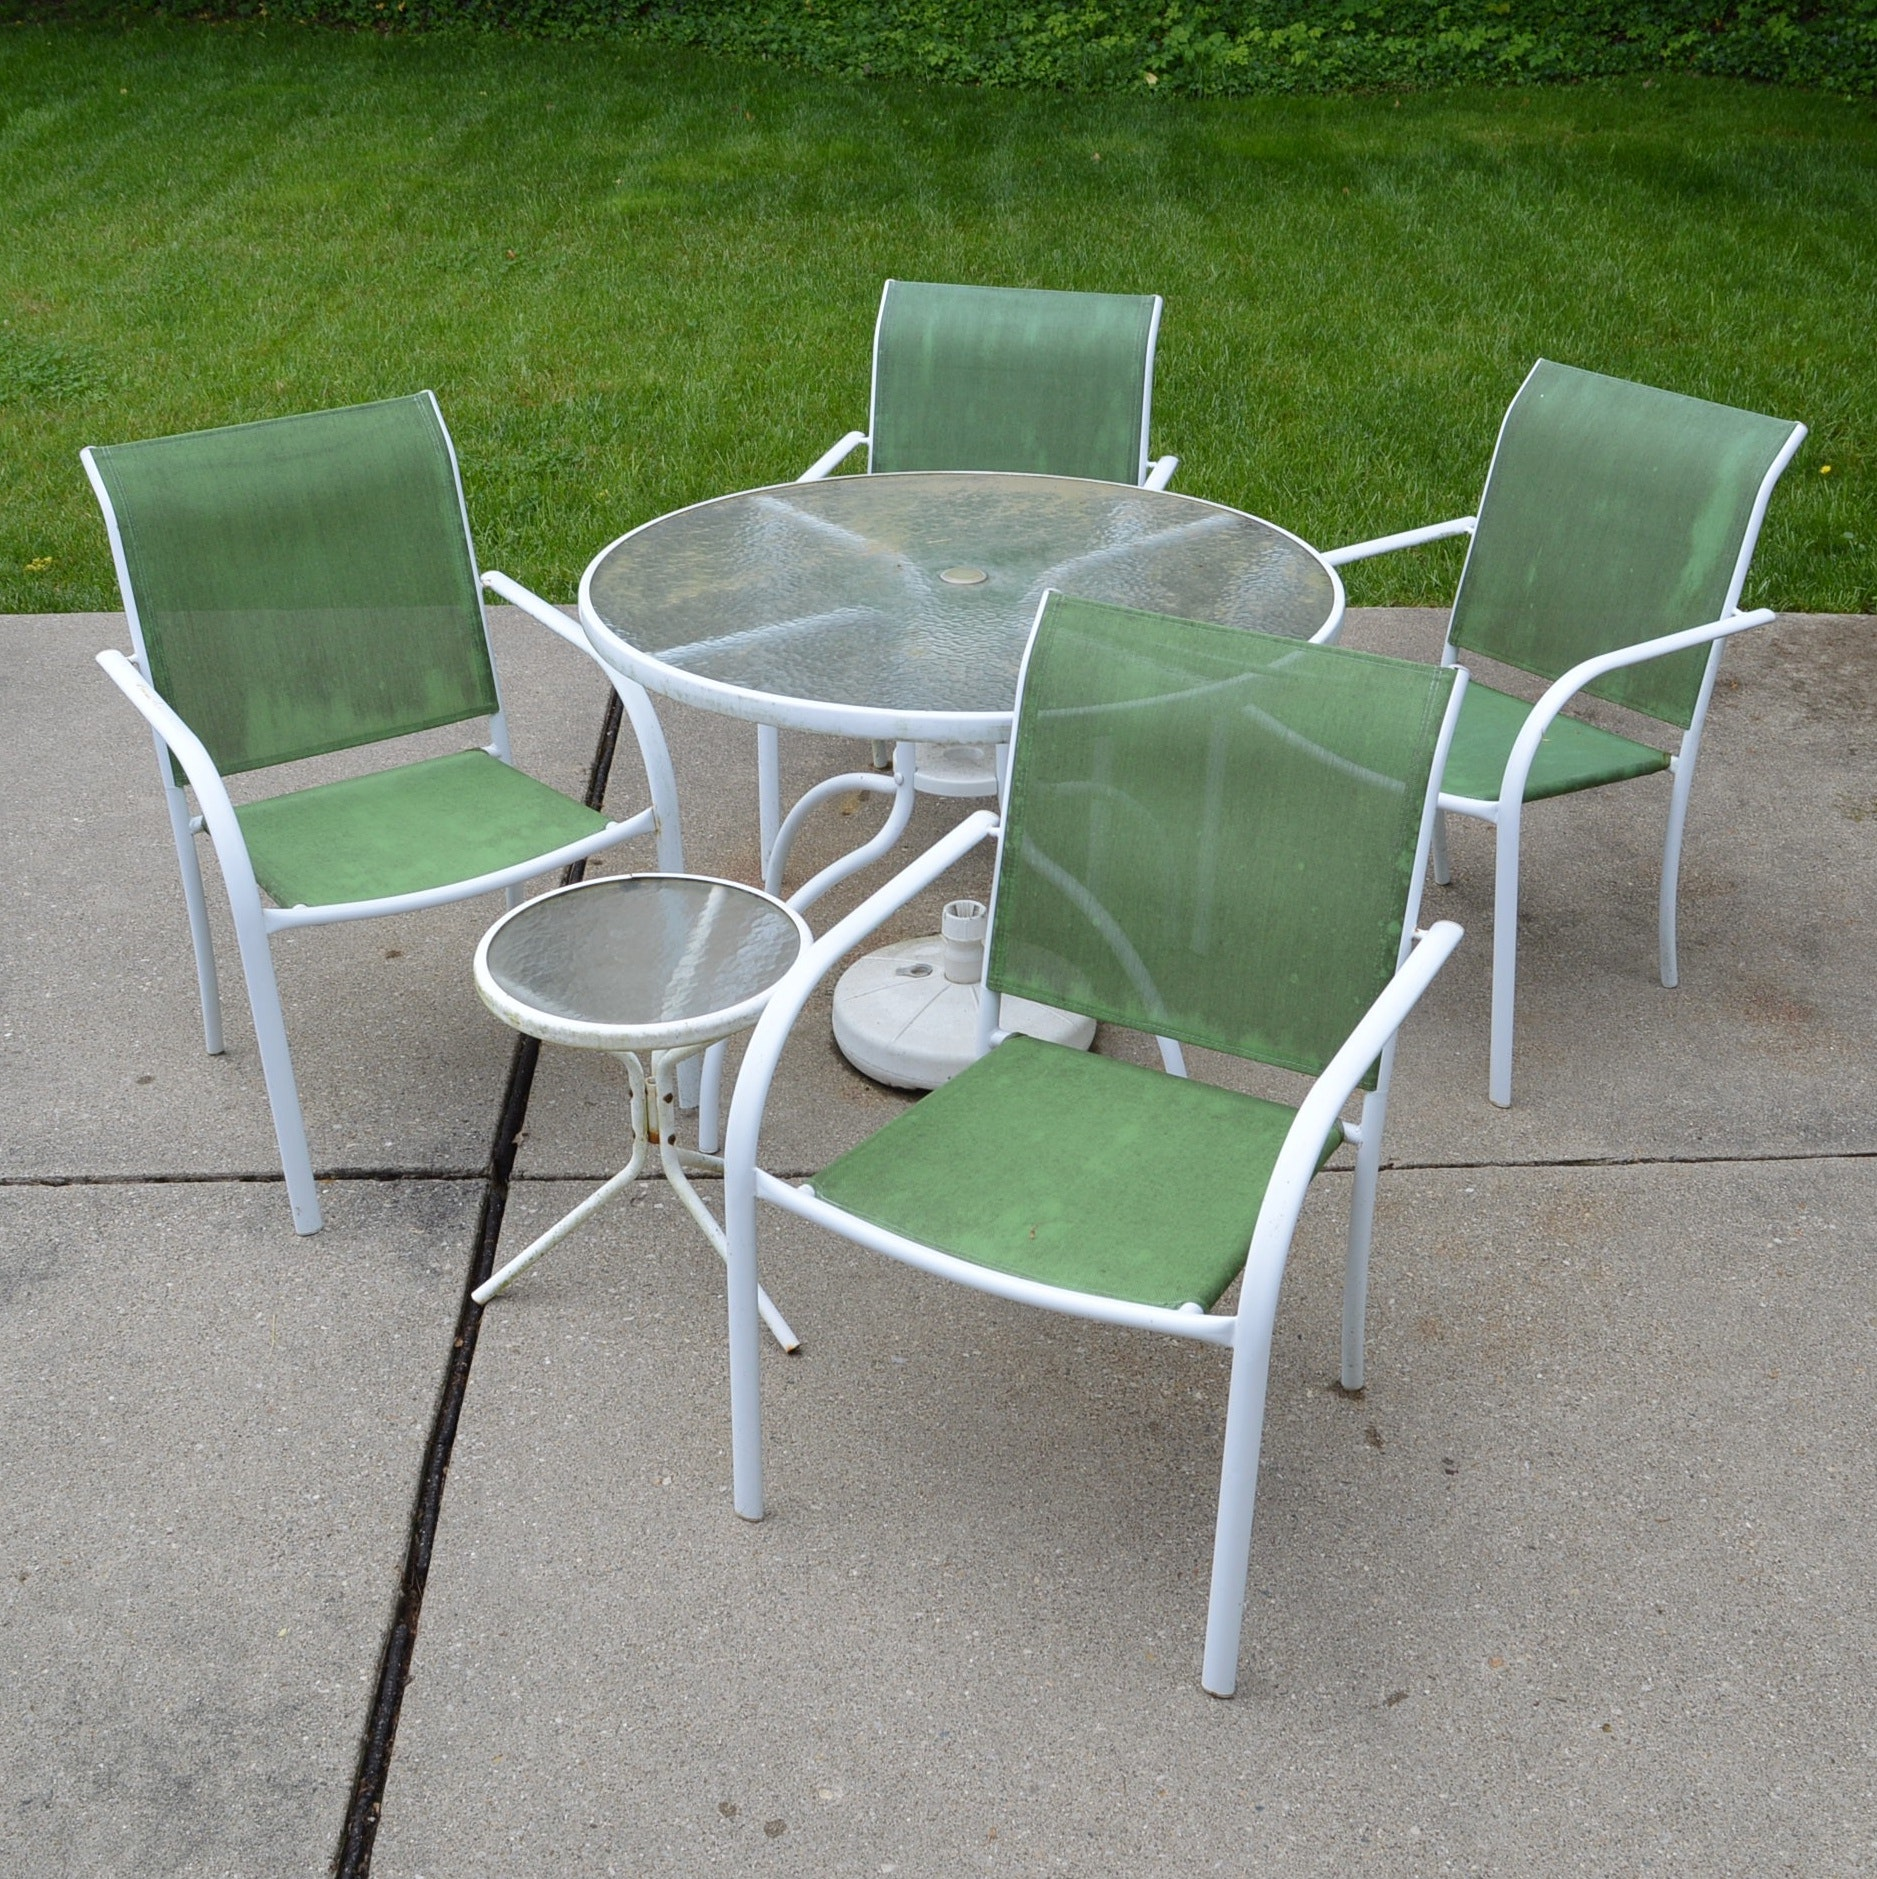 Patio Table and Four Chairs with Side Table